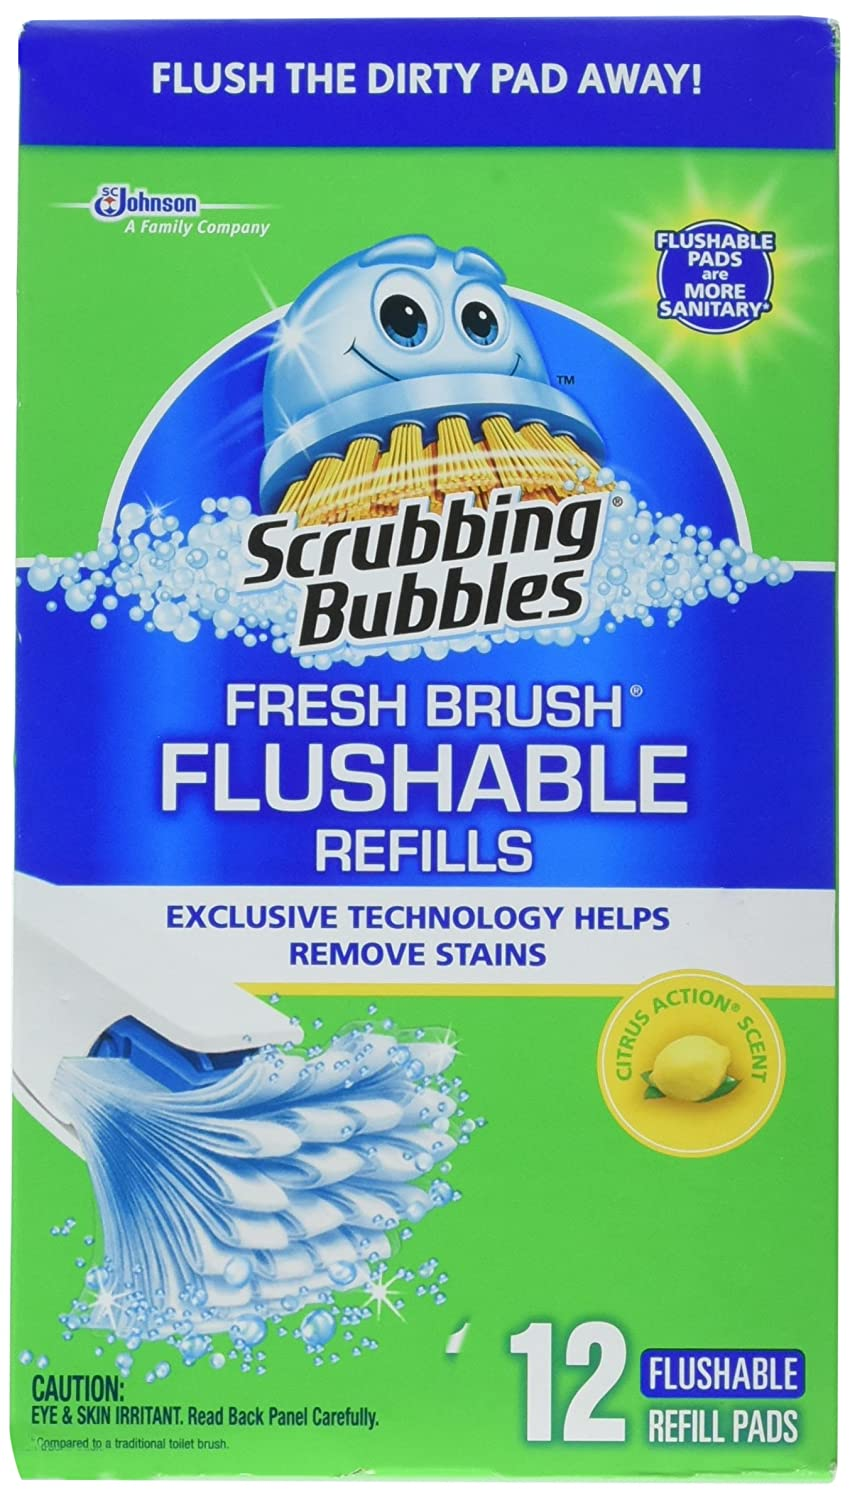 Scrubbing Bubbles 71102 12 Count, Fresh Brush Flushable Pad Refill SC Johnson And Son Inc. TRVAL41712